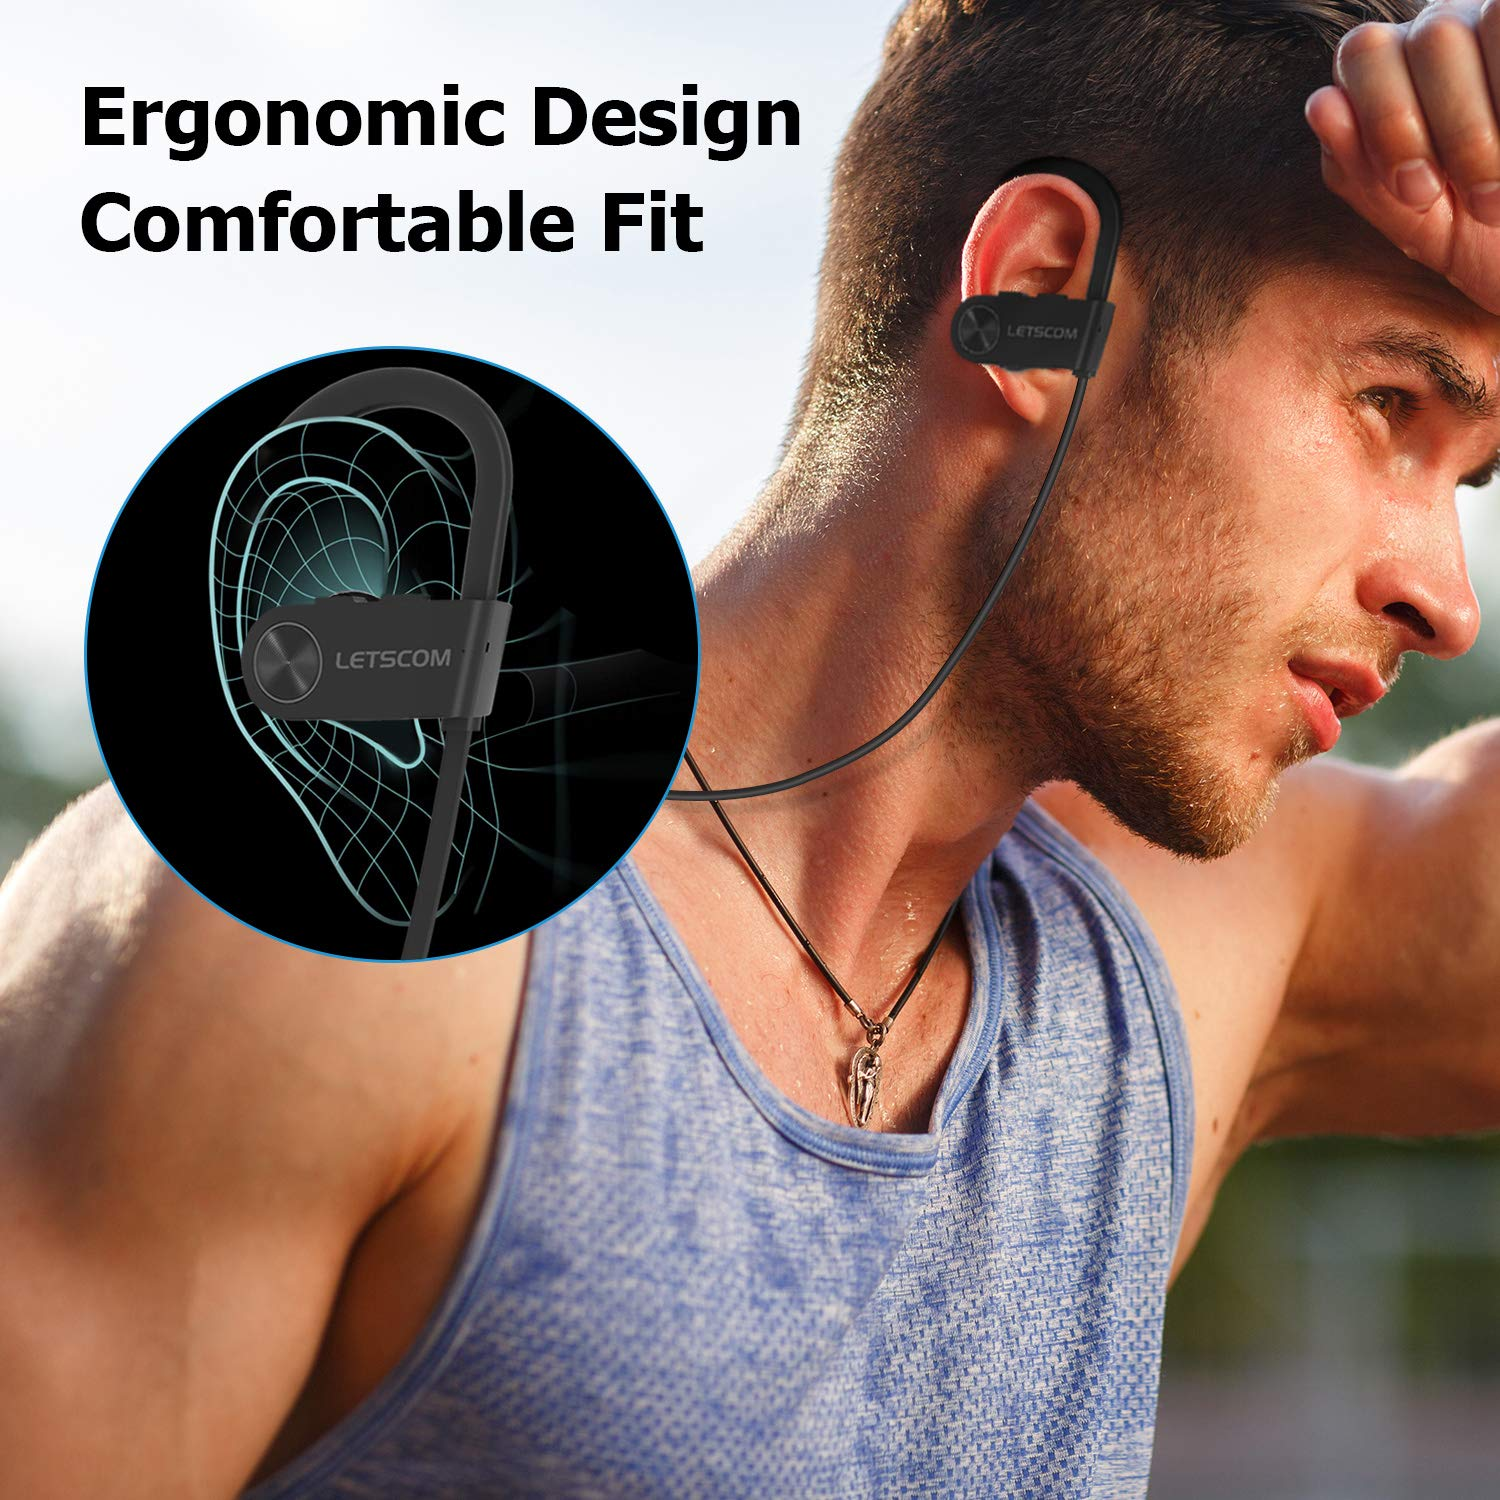 Bluetooth Headphones, LETSCOM Wireless Earbuds IPX7 Waterproof Noise Cancelling Headsets, Richer Bass & HiFi Stereo Sports Earphones 8 Hours Playtime Running Headphones with Travel Case by LETSCOM (Image #5)